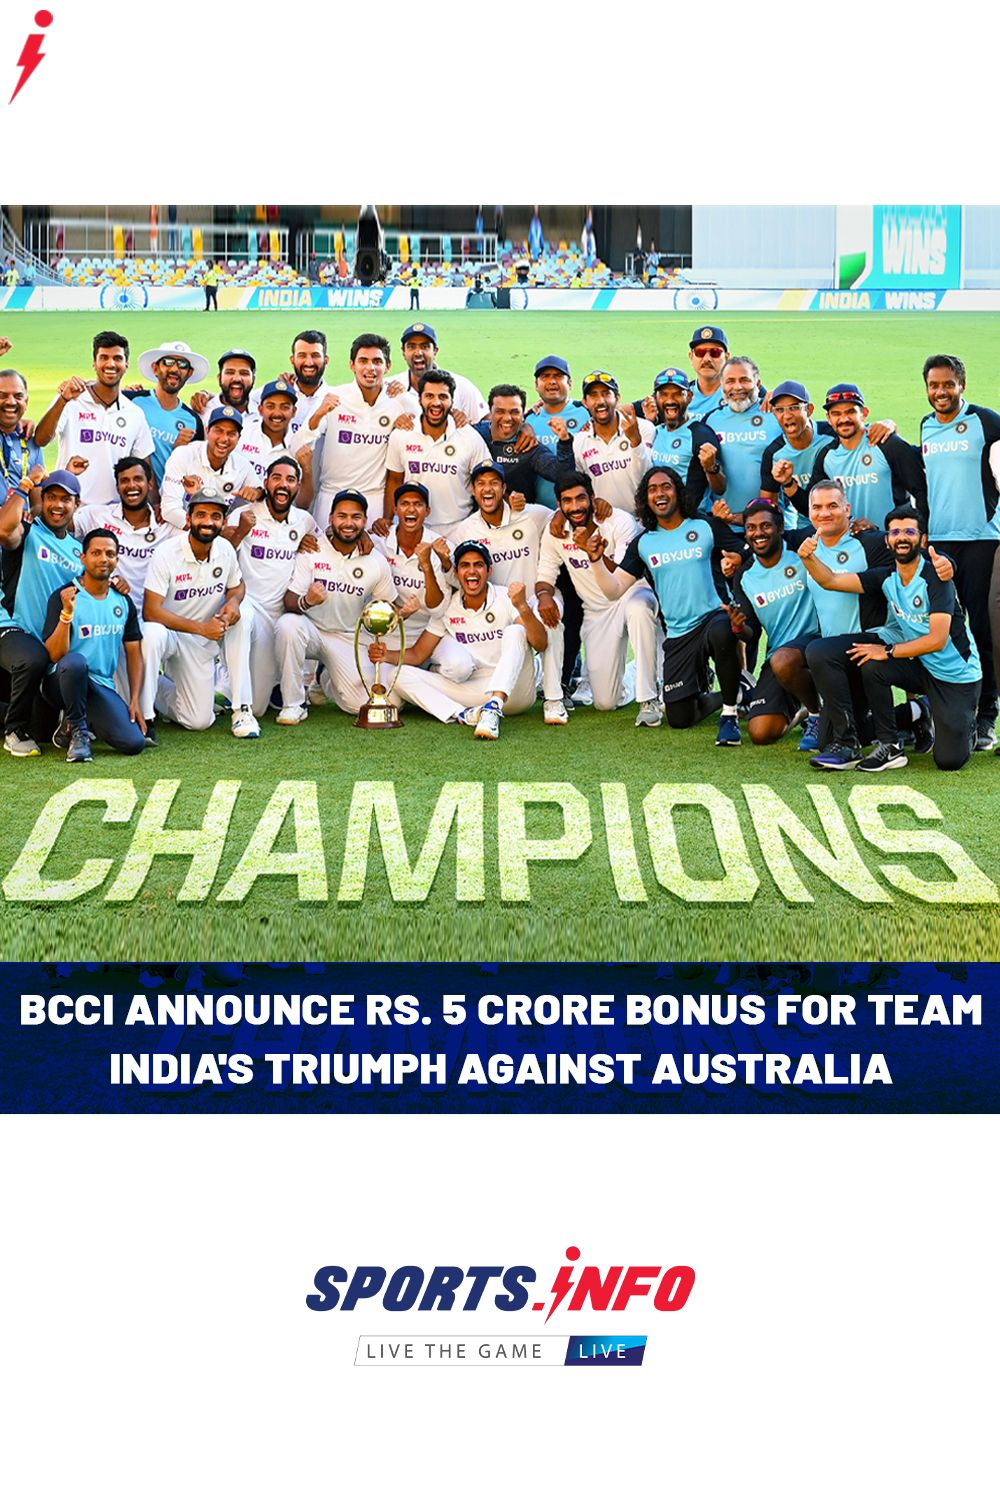 Bcci S Announcement For Team India S Victory Against Australia In 2021 The Incredibles Australia Victorious